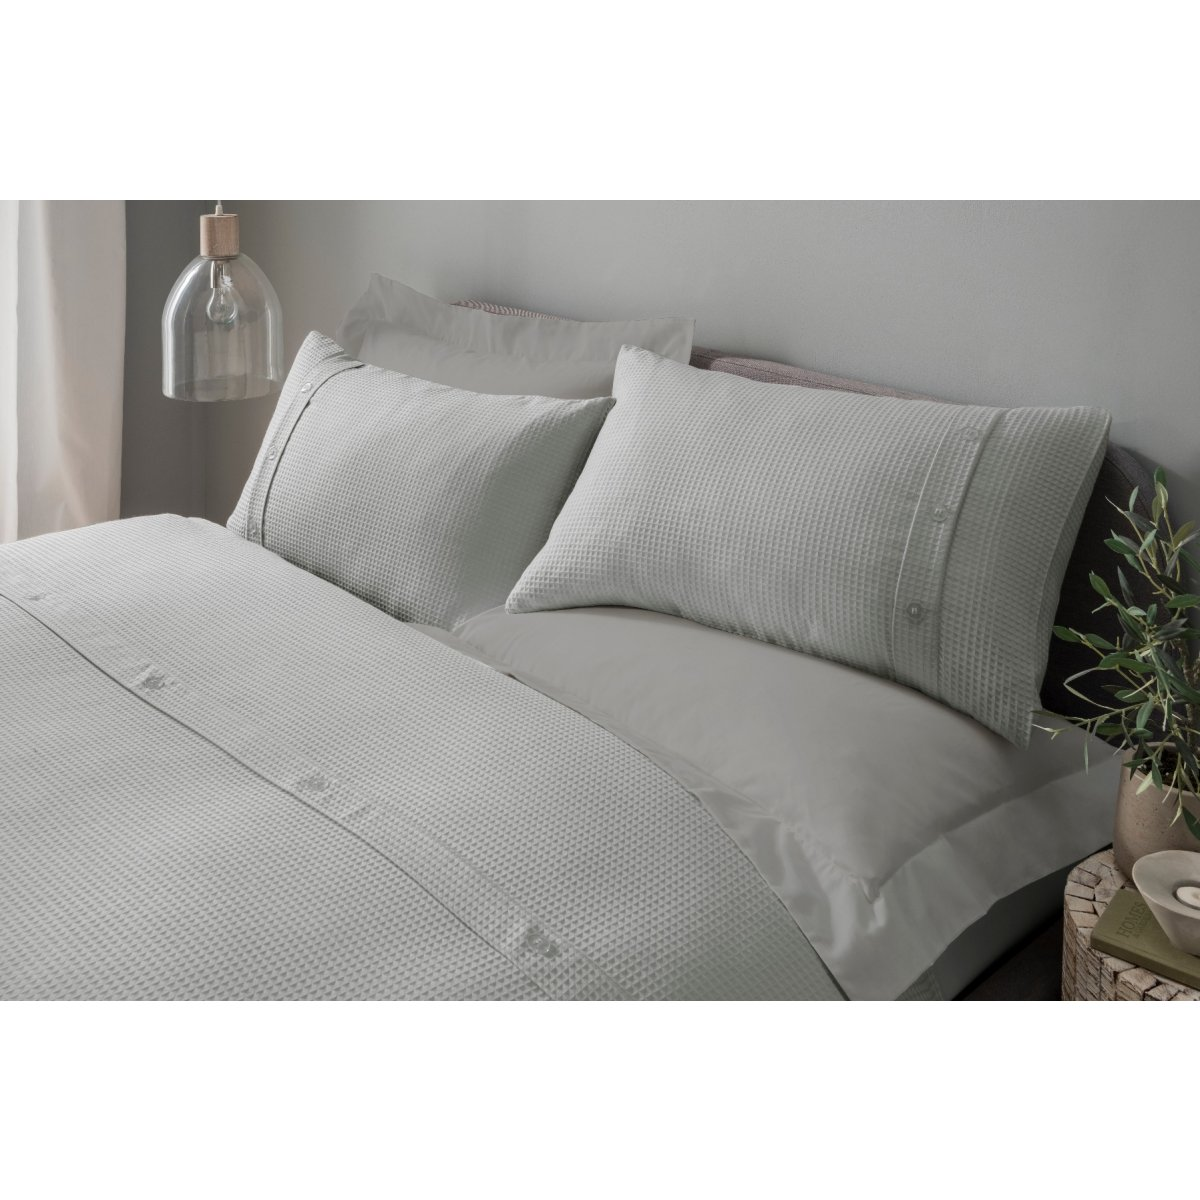 Waffle Grey Bedding - Duvet Cover and Pillowcase Set